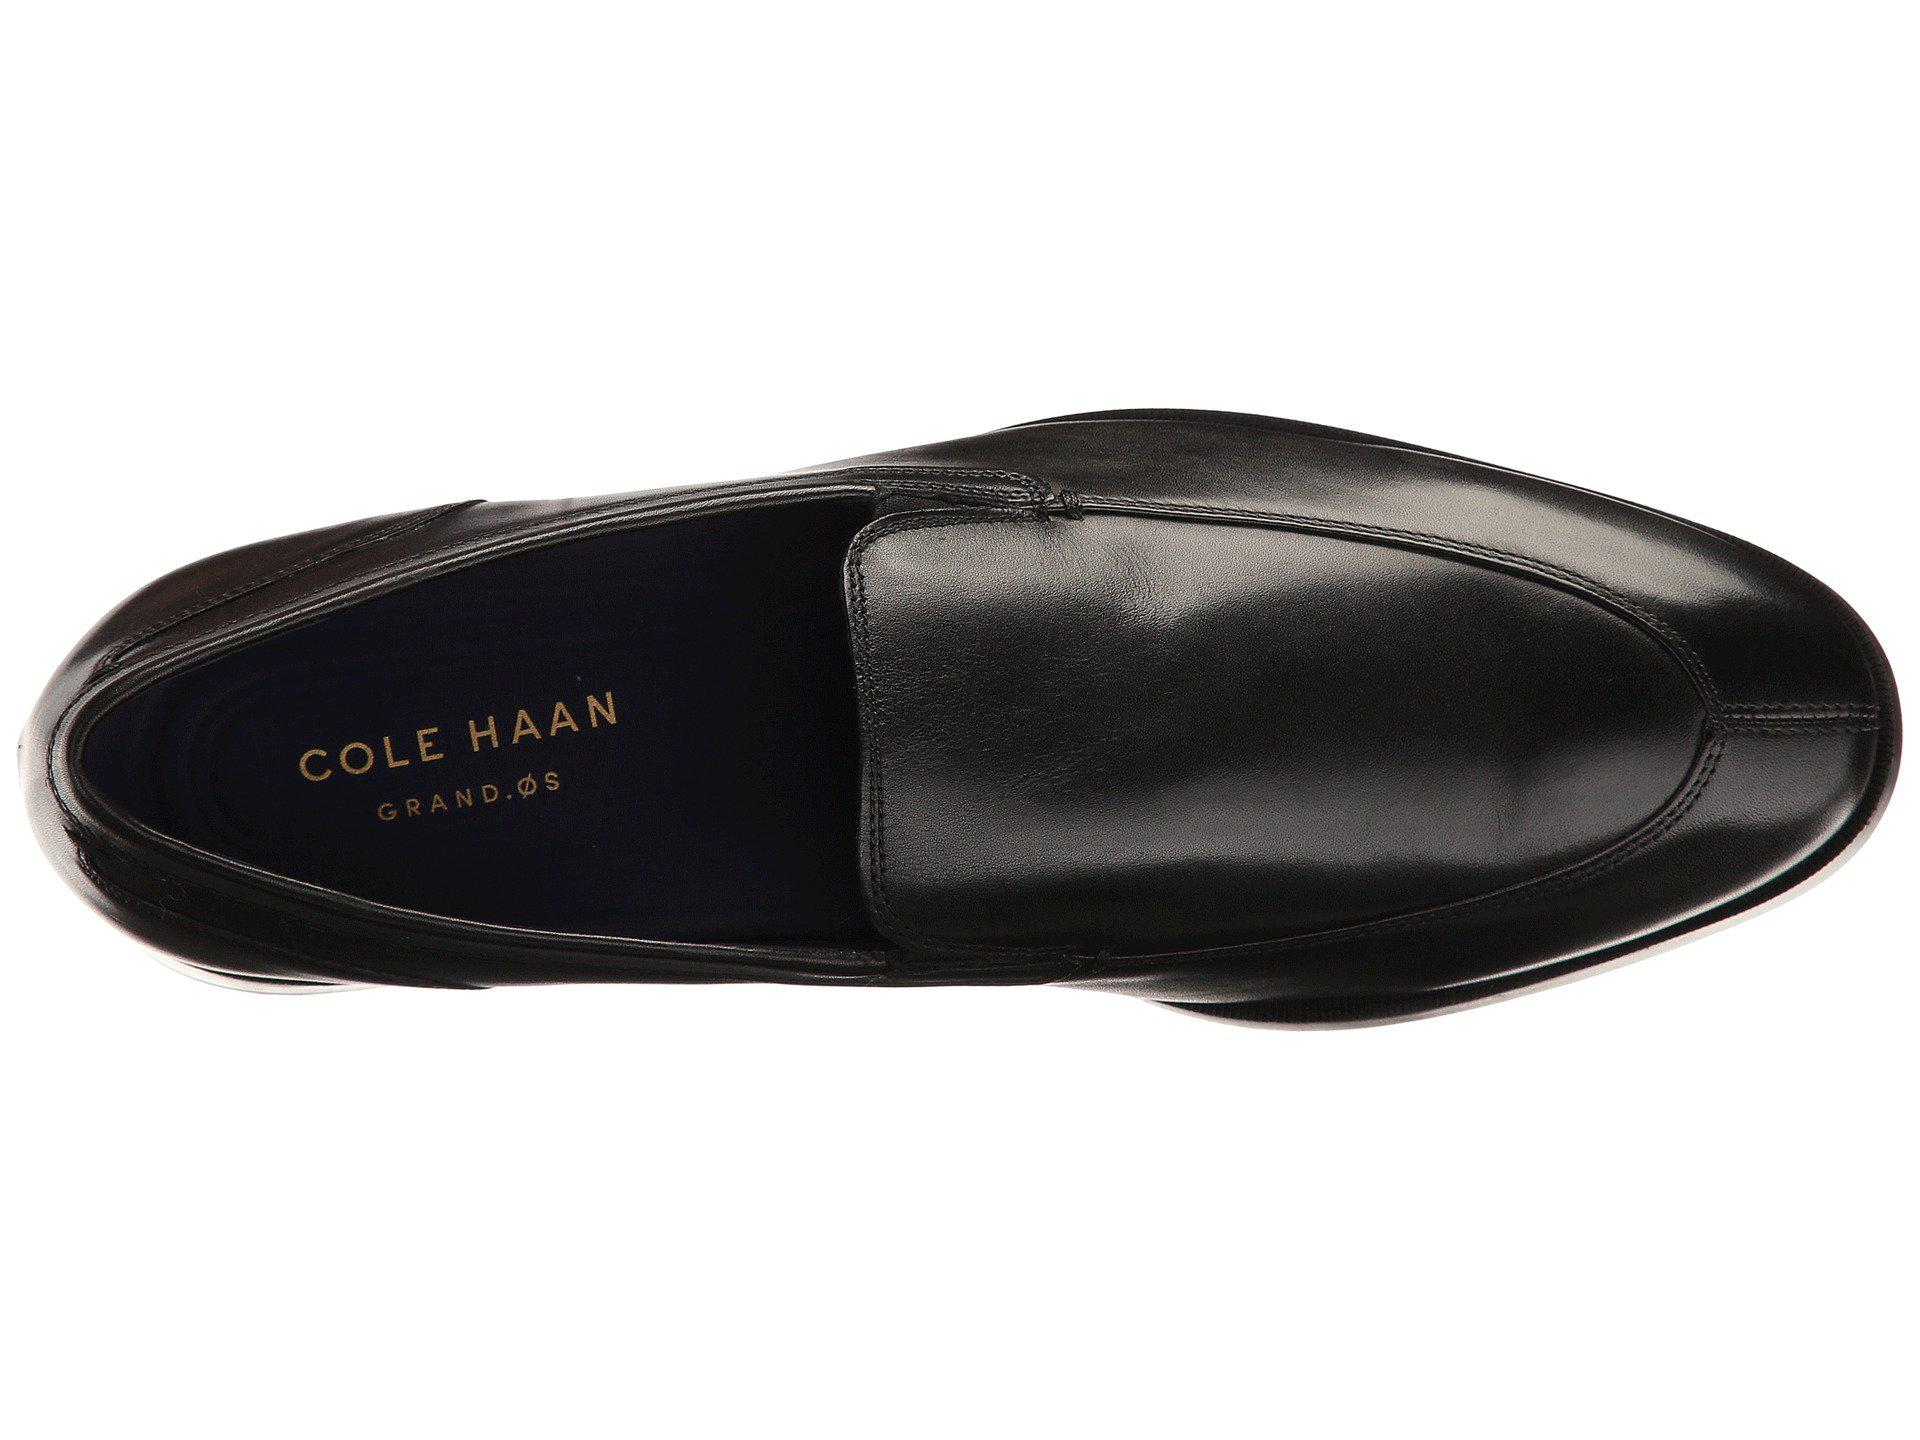 96e7db14979 Cole Haan - Black Jay Grand 2 Gore for Men - Lyst. View fullscreen